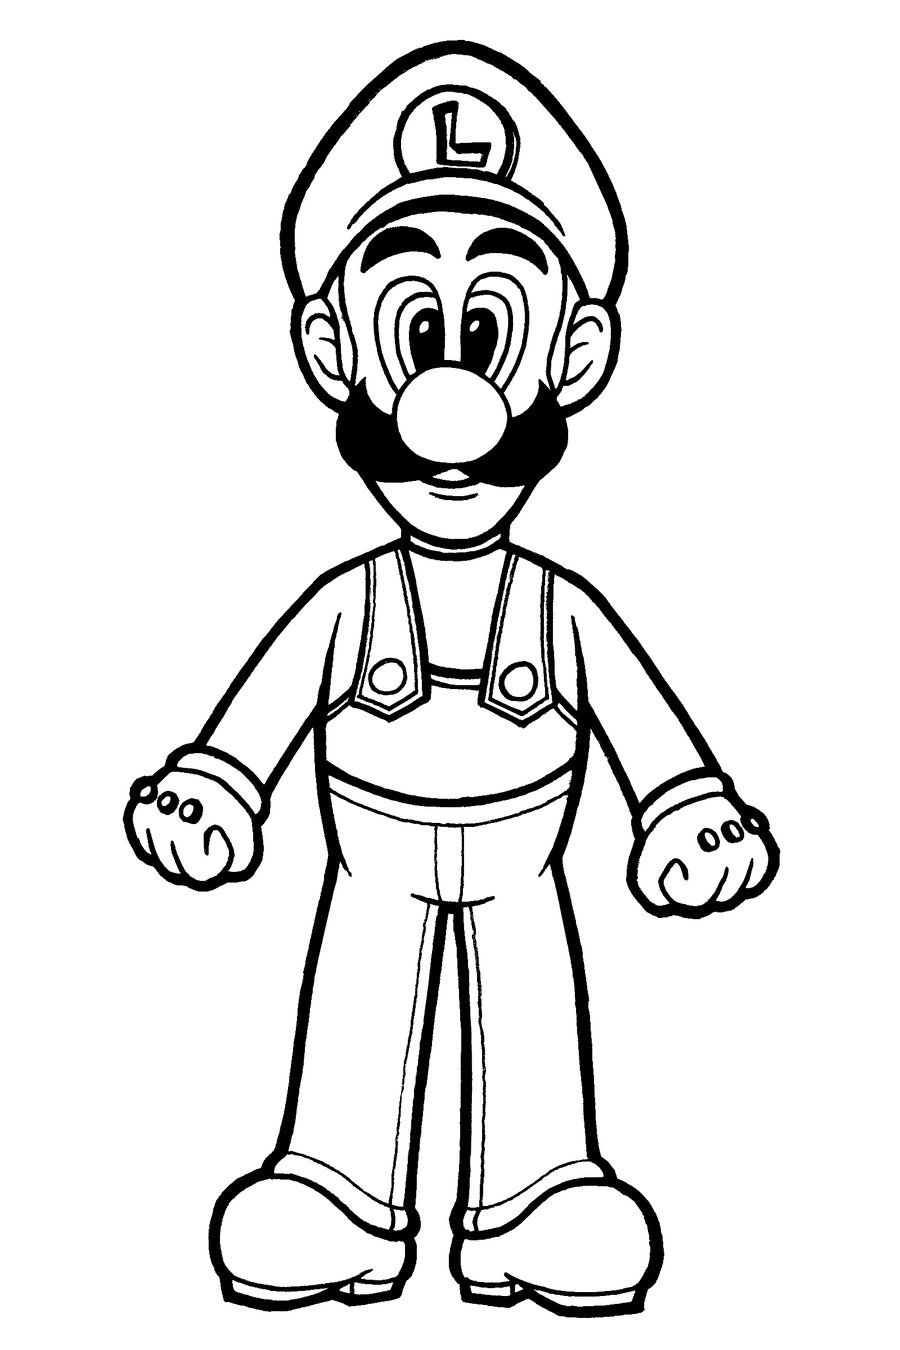 Pin By Ana On Screenshots Mario Coloring Pages Super Mario Coloring Pages Coloring Pages